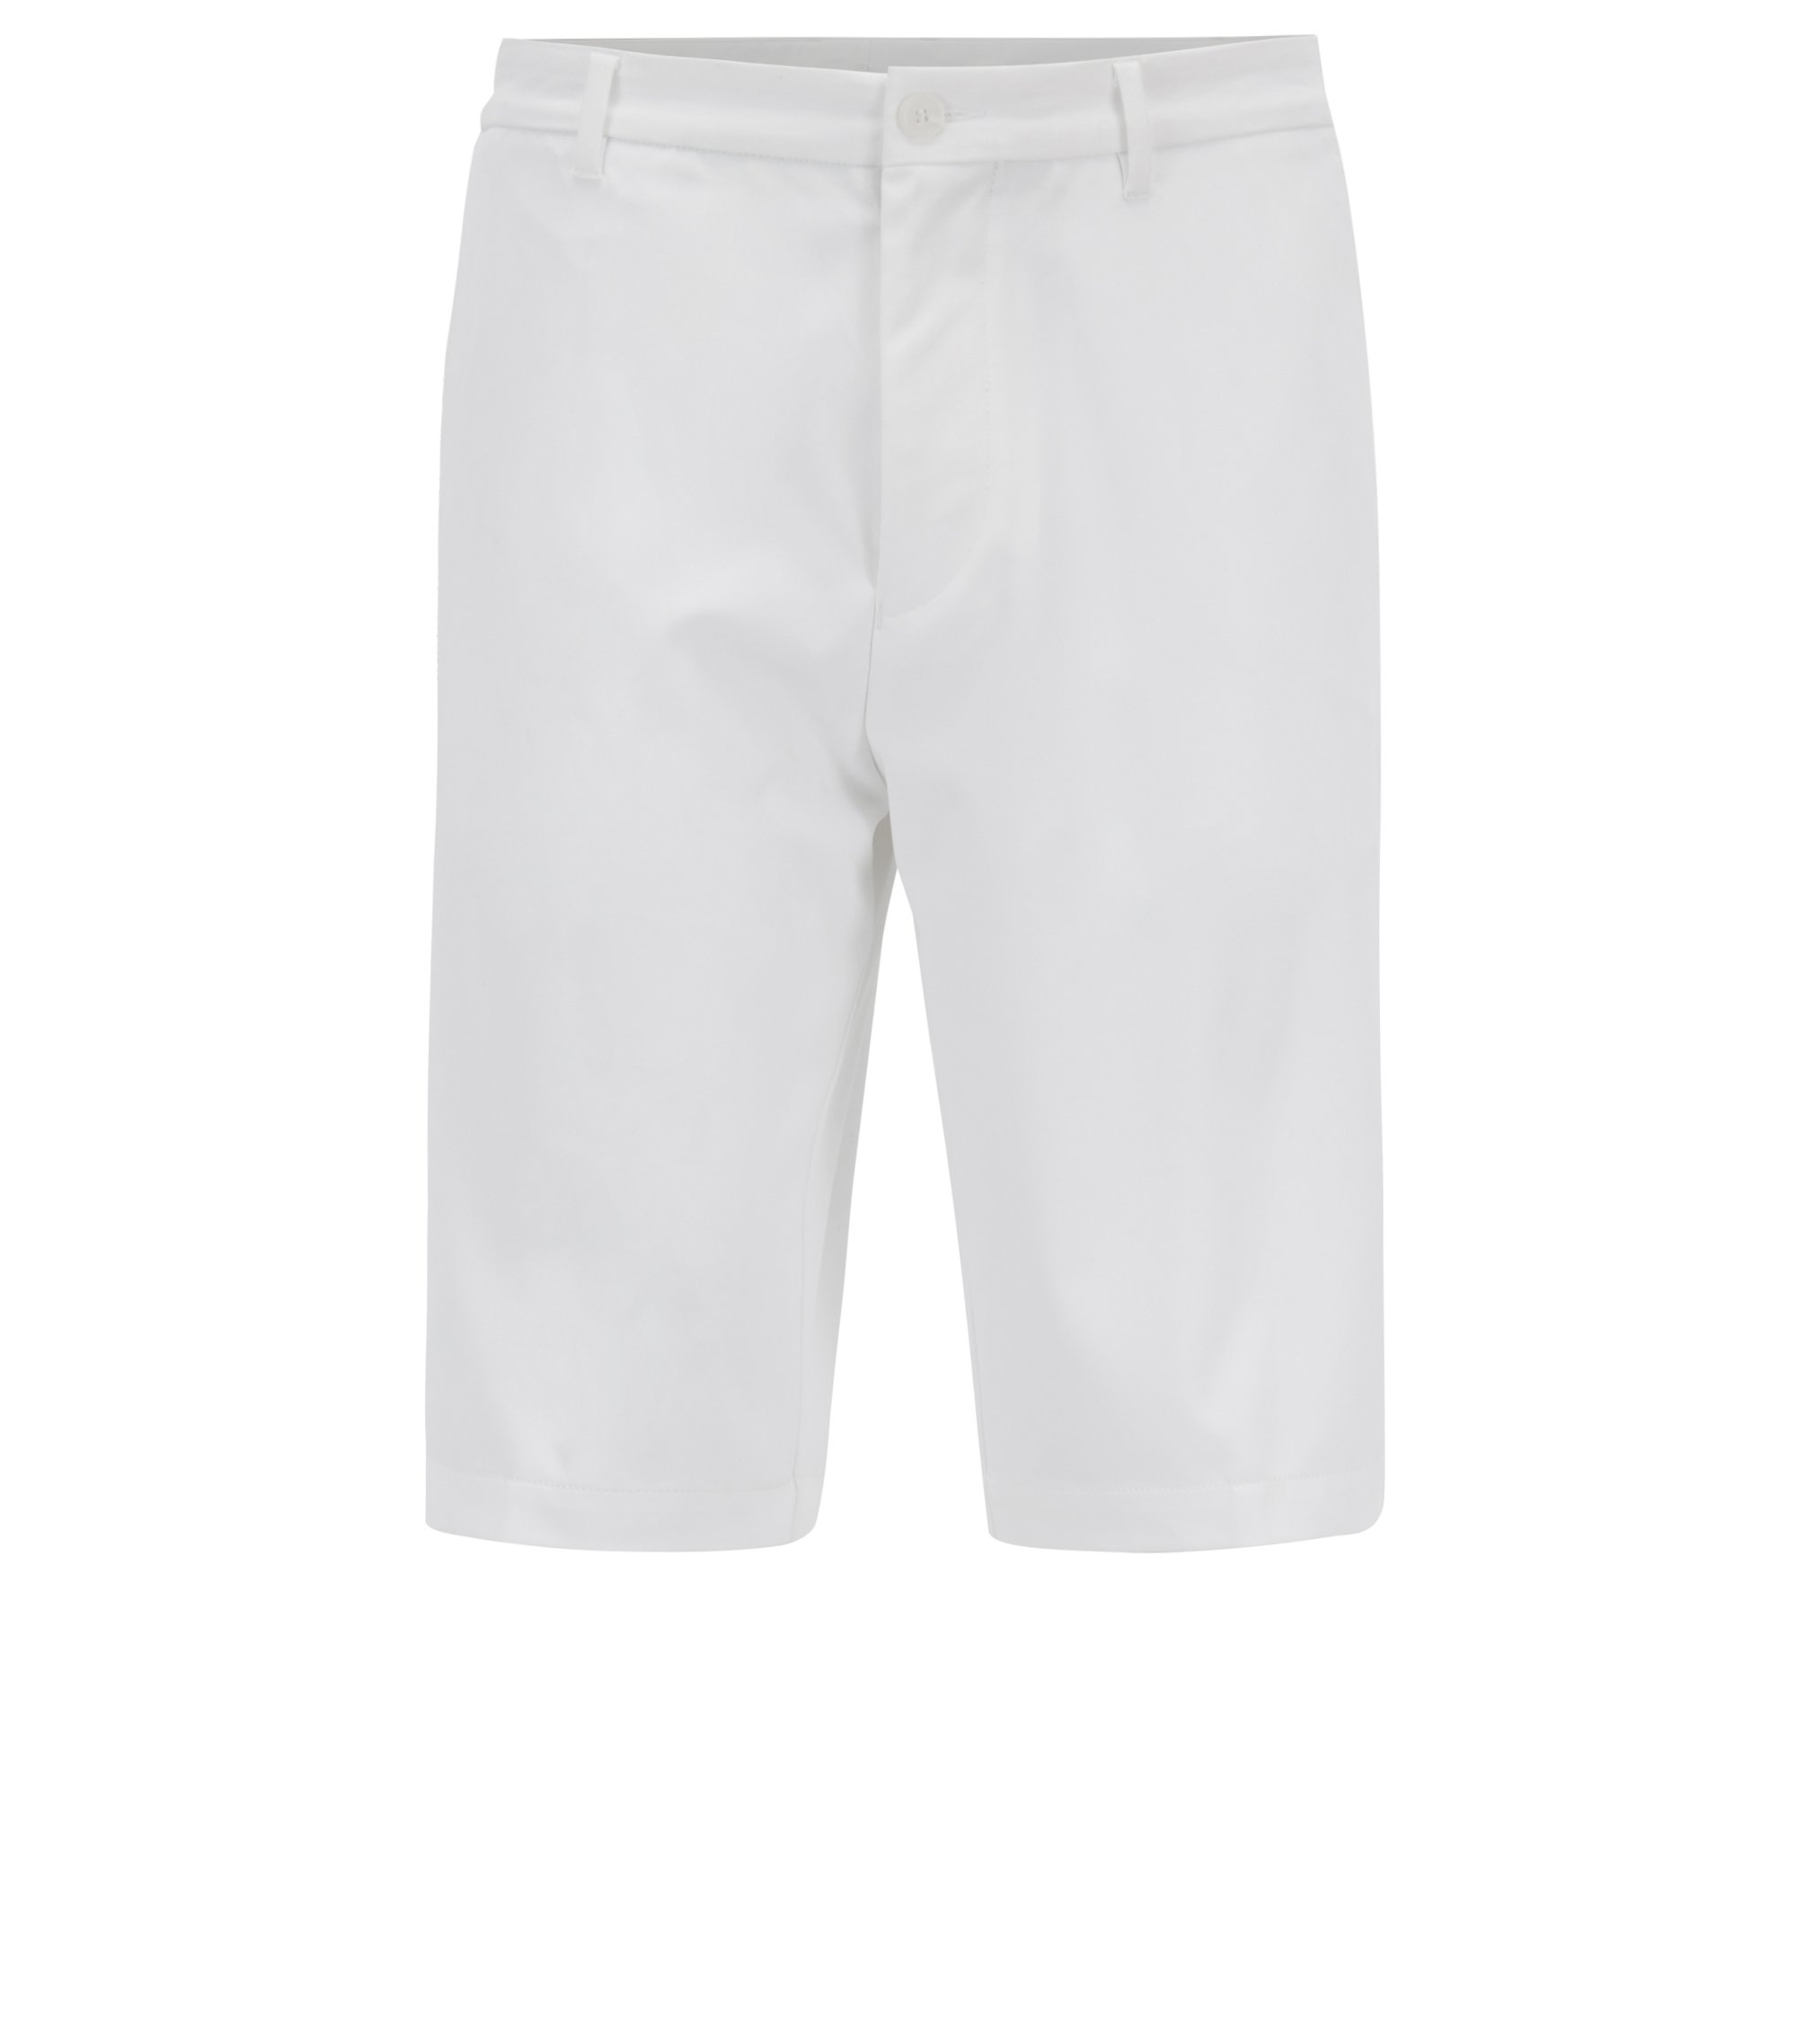 Shorts regular fit de golf en sarga técnica, Blanco